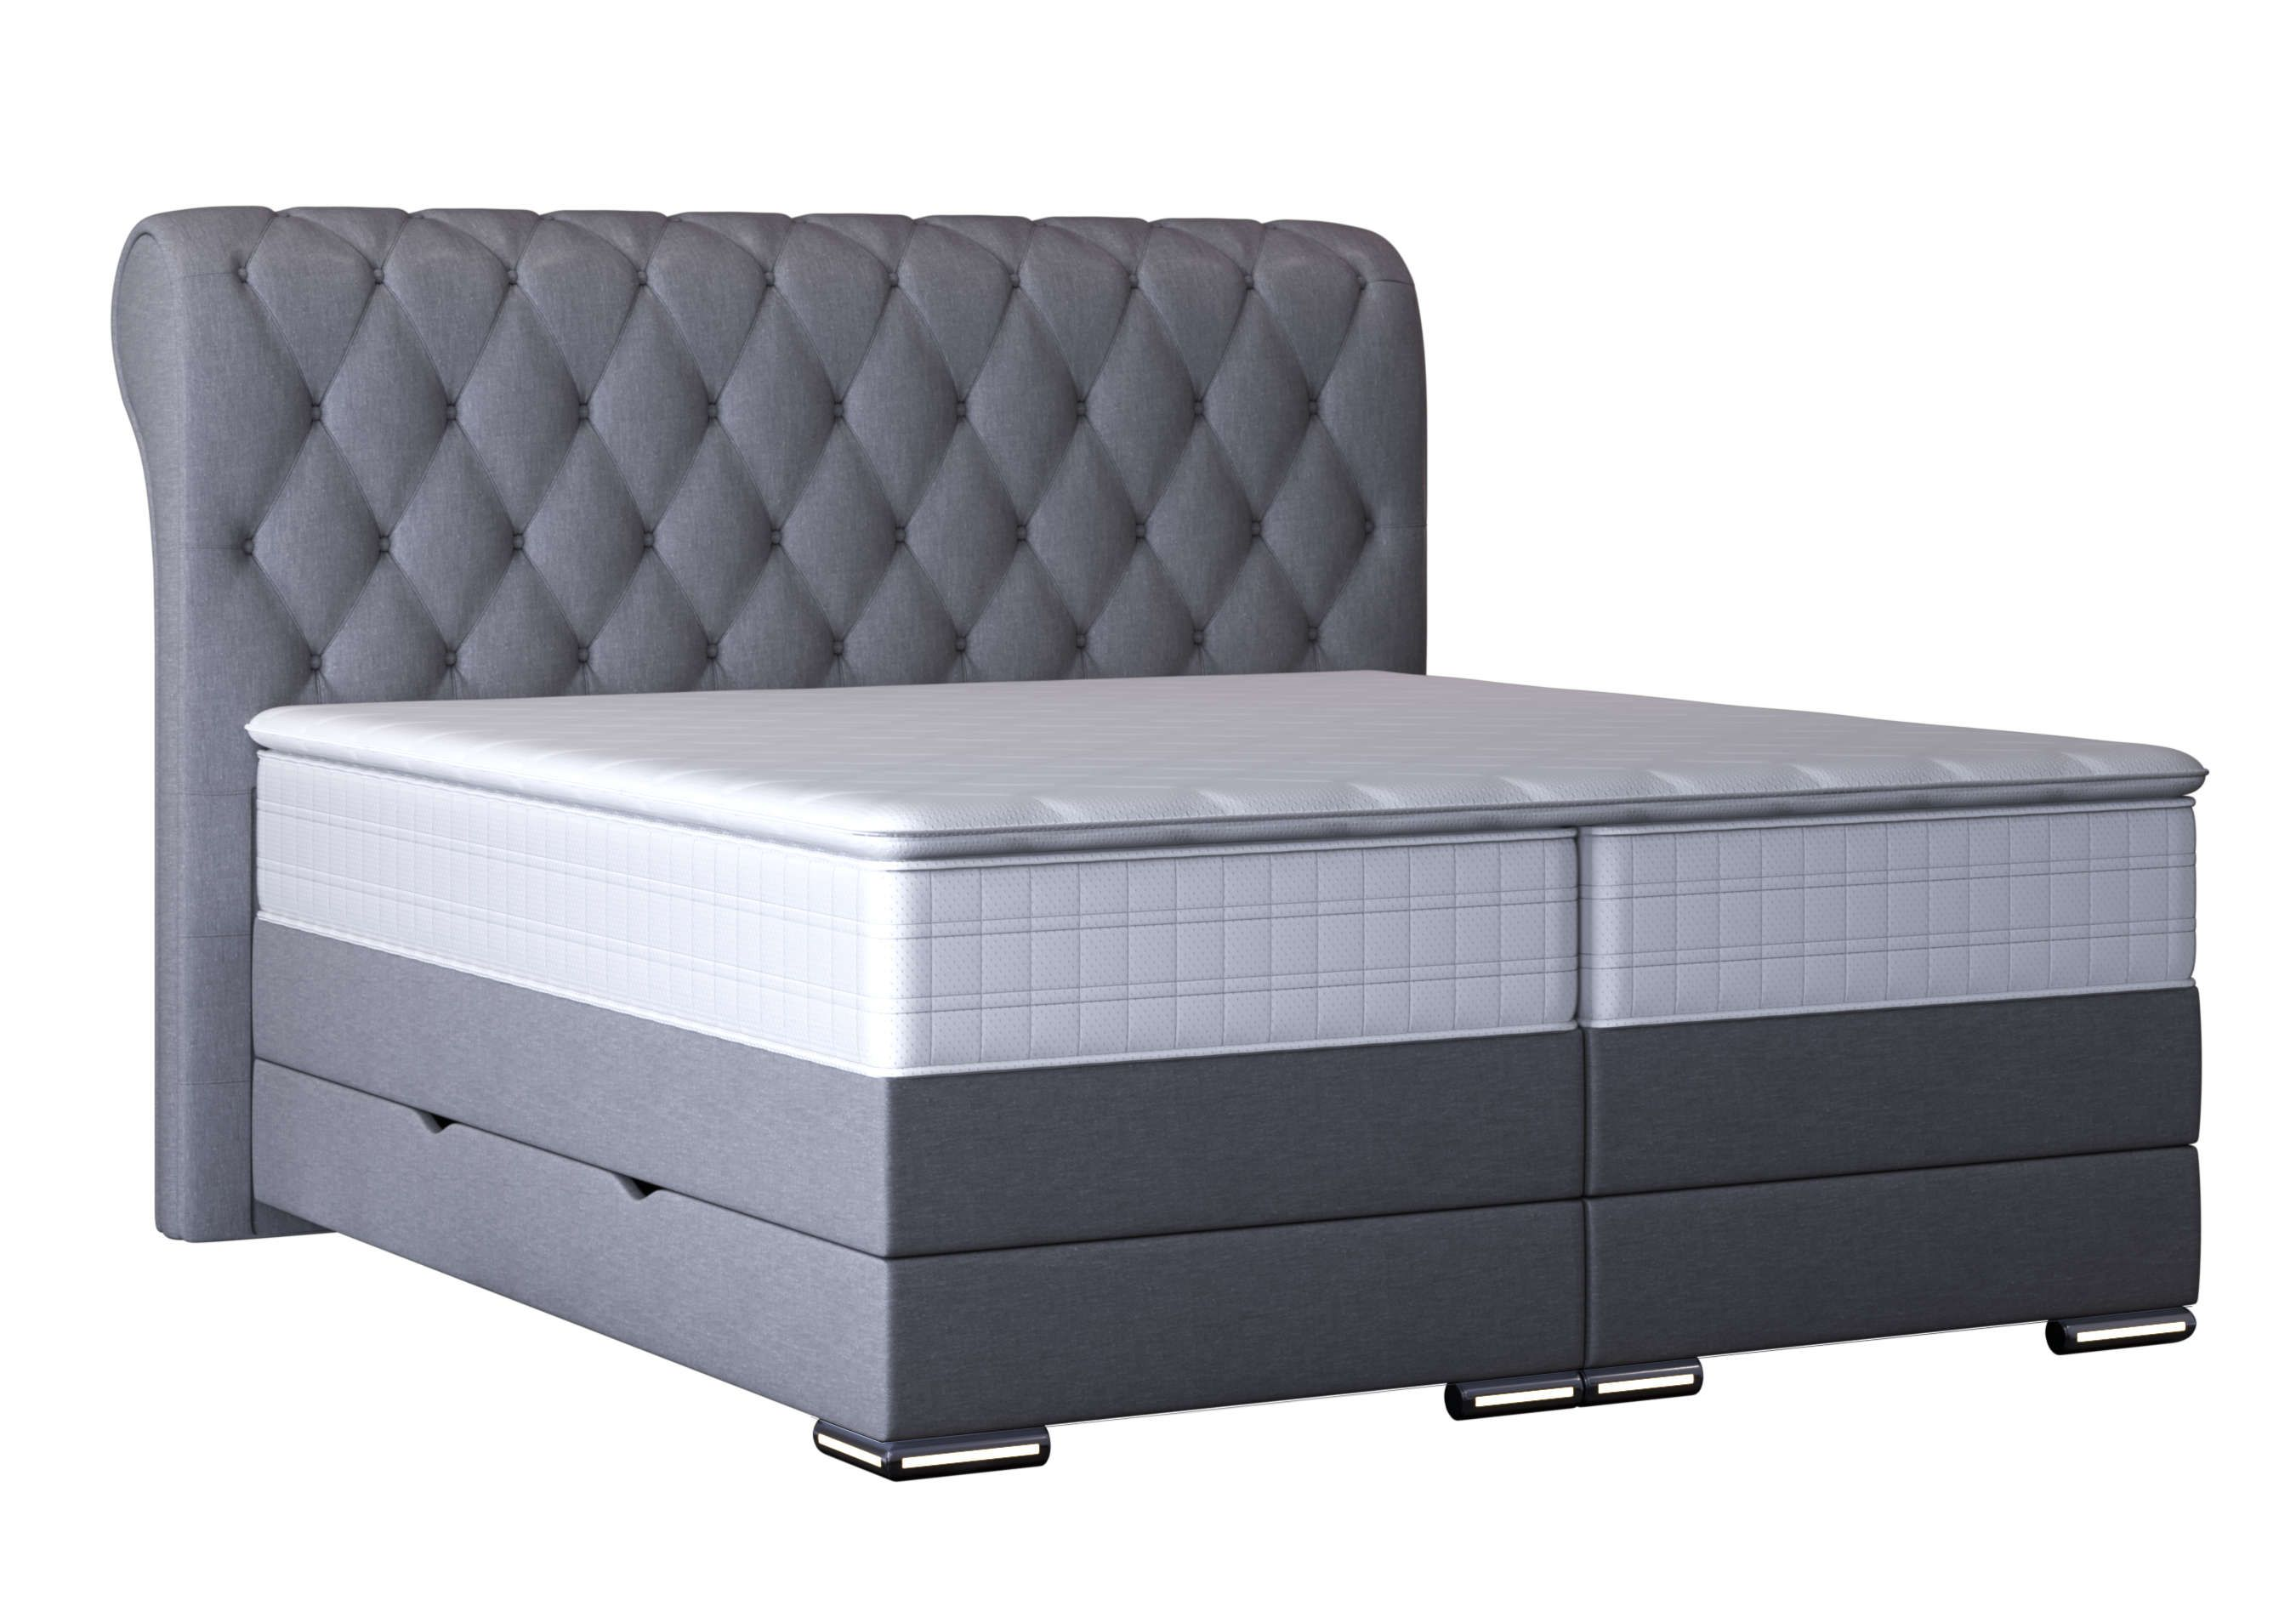 Boxspringbett Baron Graumit Led Beleuchtung Luxus